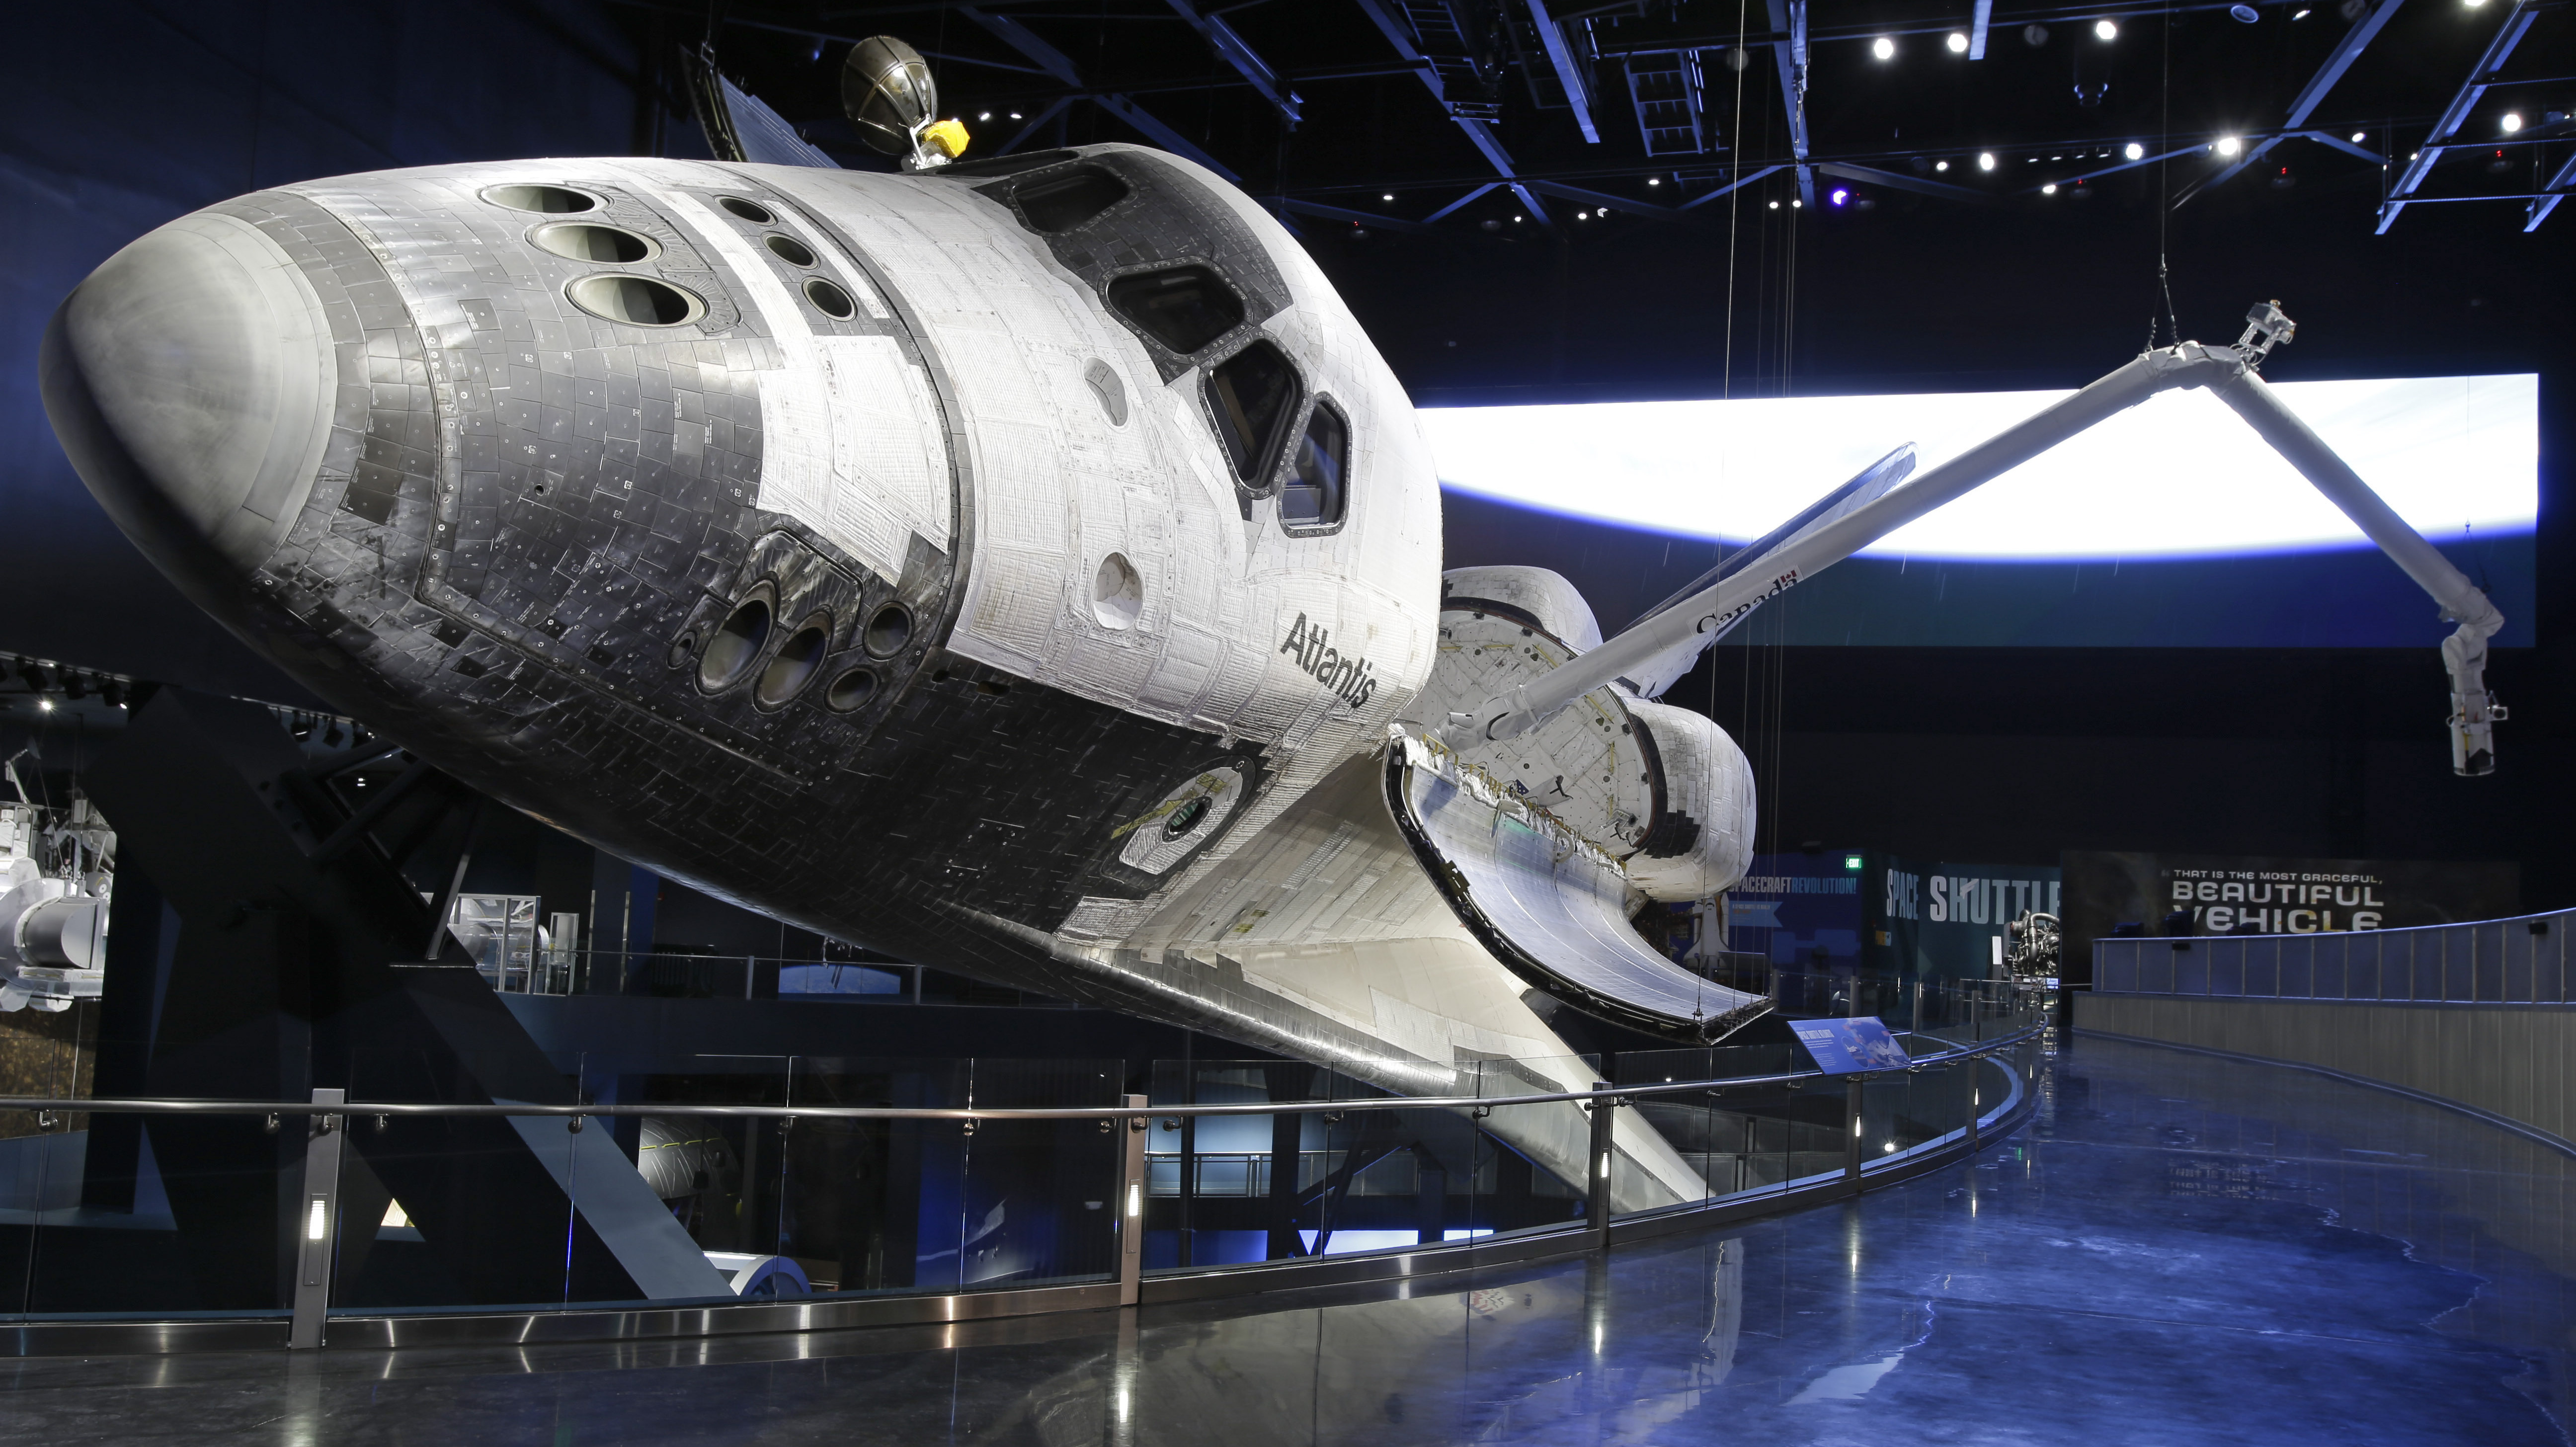 NASA; KENNEDY SPACE CENTER AND SPACE SHUTTLE ATLANTIS WELCOME YOU ...